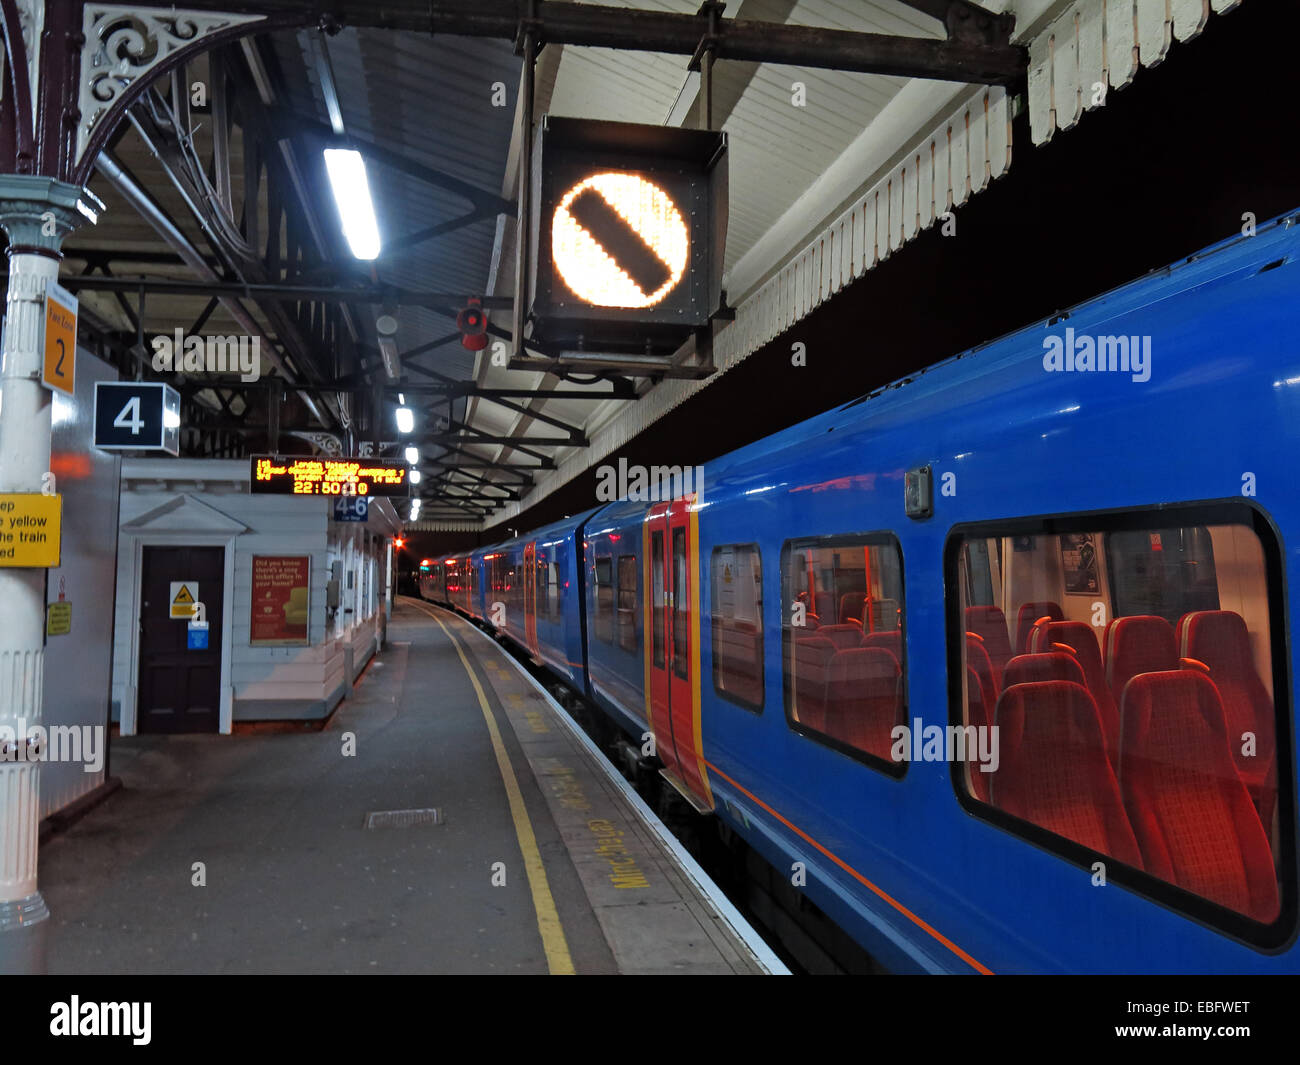 SW Trains EMU at Clapham Junction Railway Station at night, on platform 4 Stock Photo